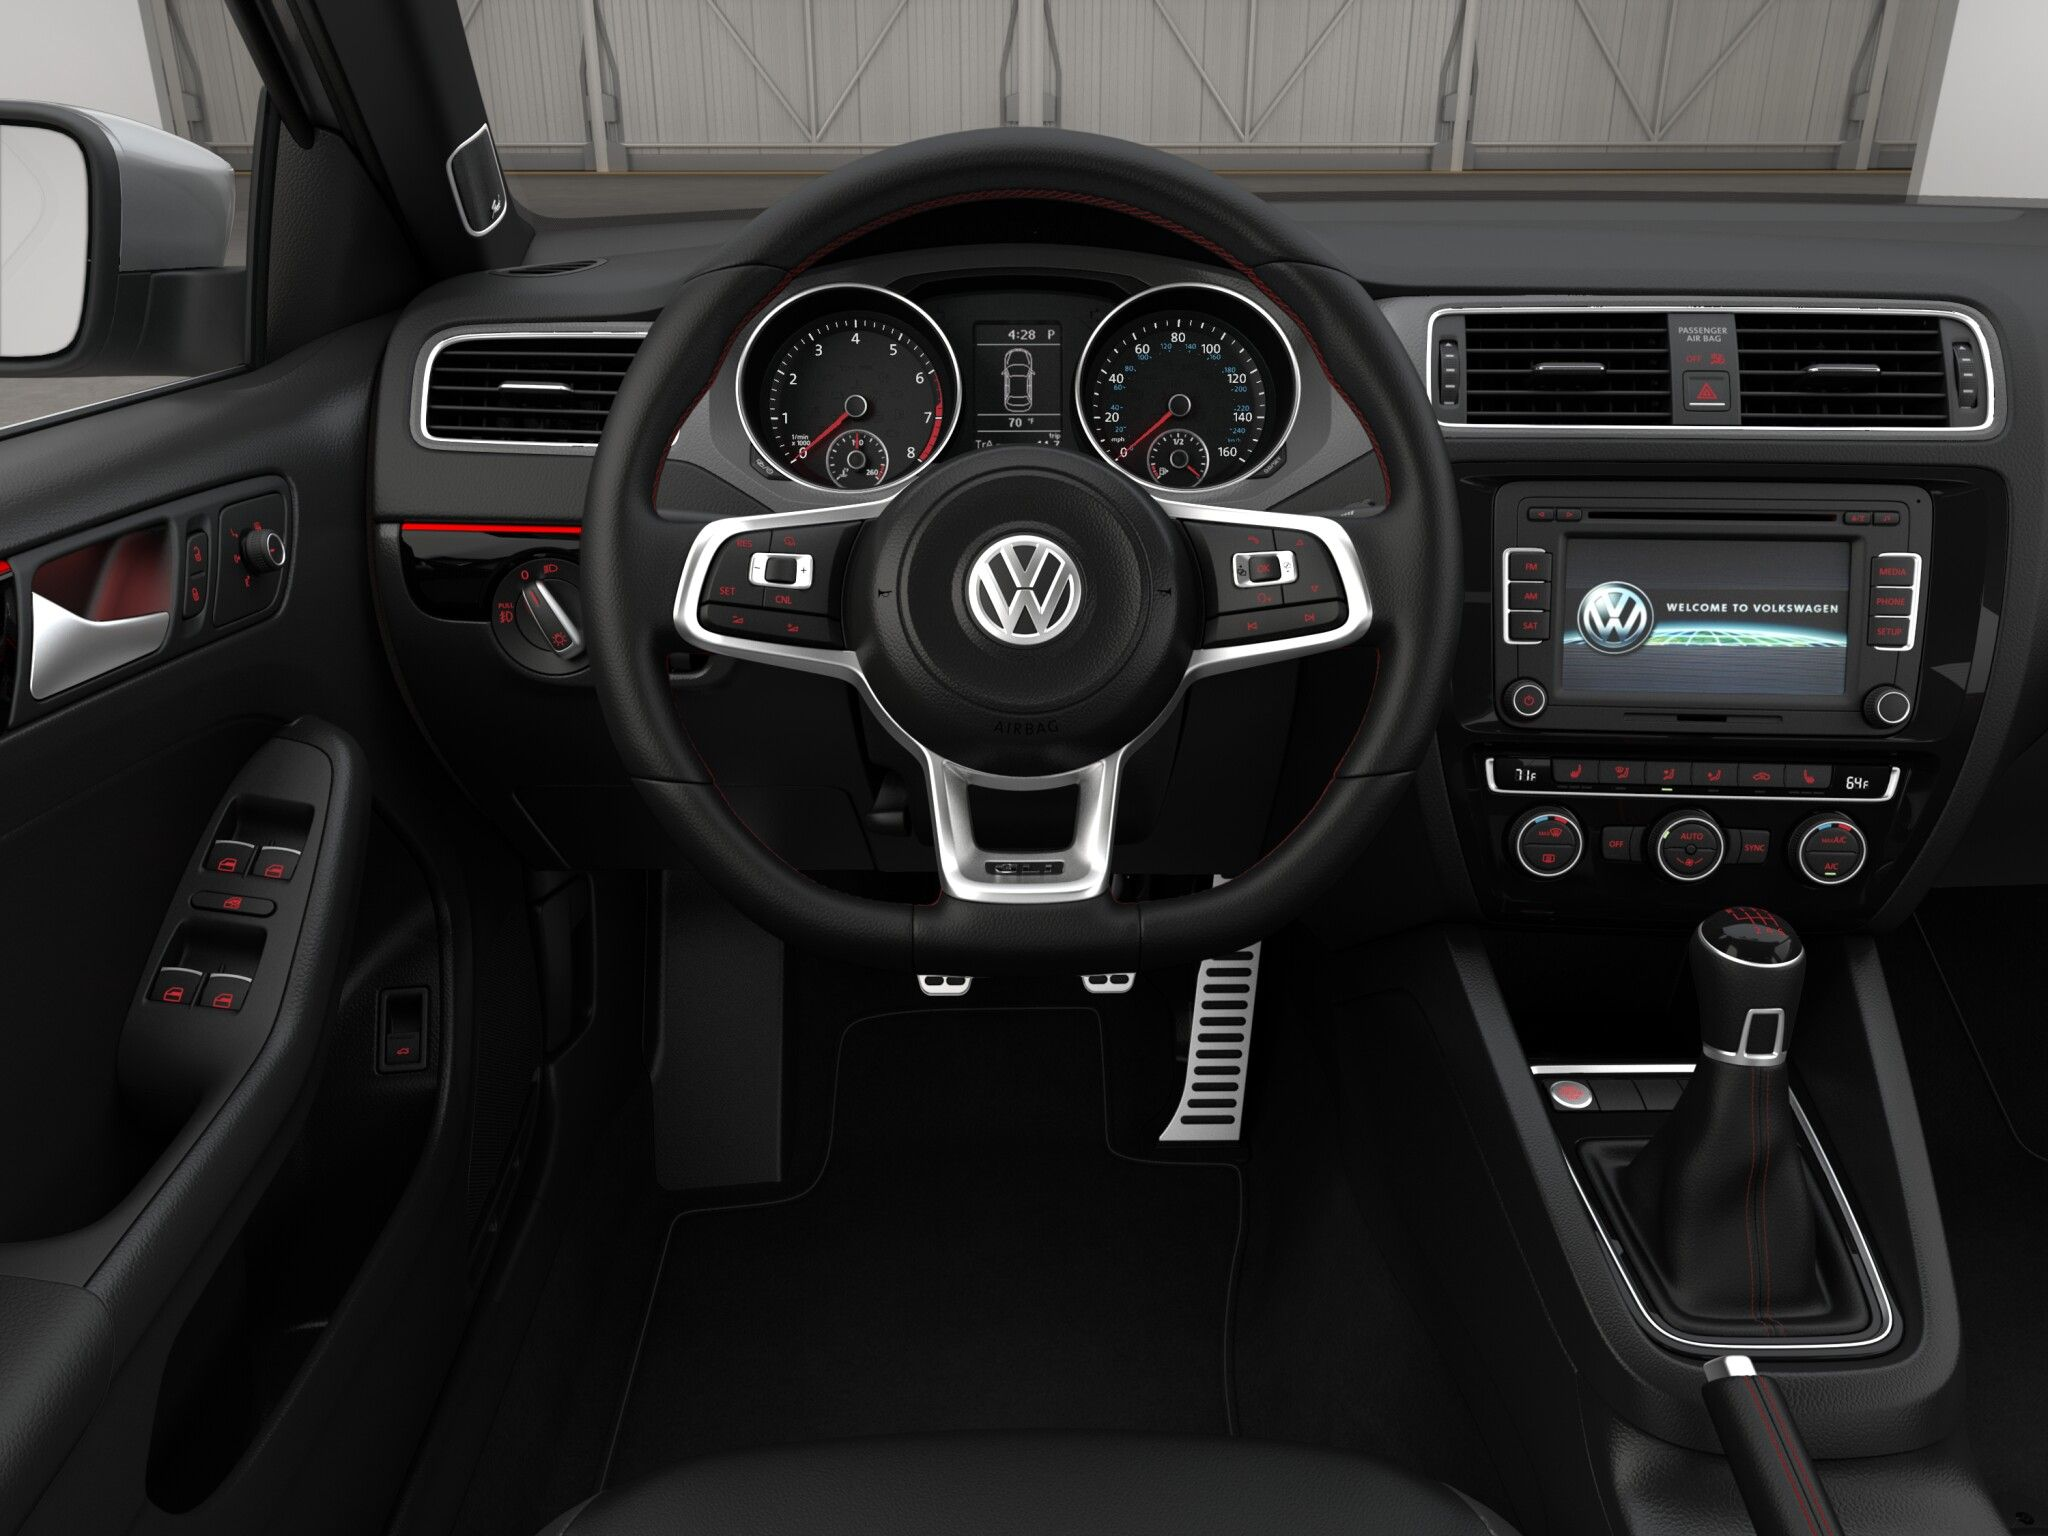 2015 Jetta Gli >> Check Out The Volkswagen I Just Built On Vw Com Homes